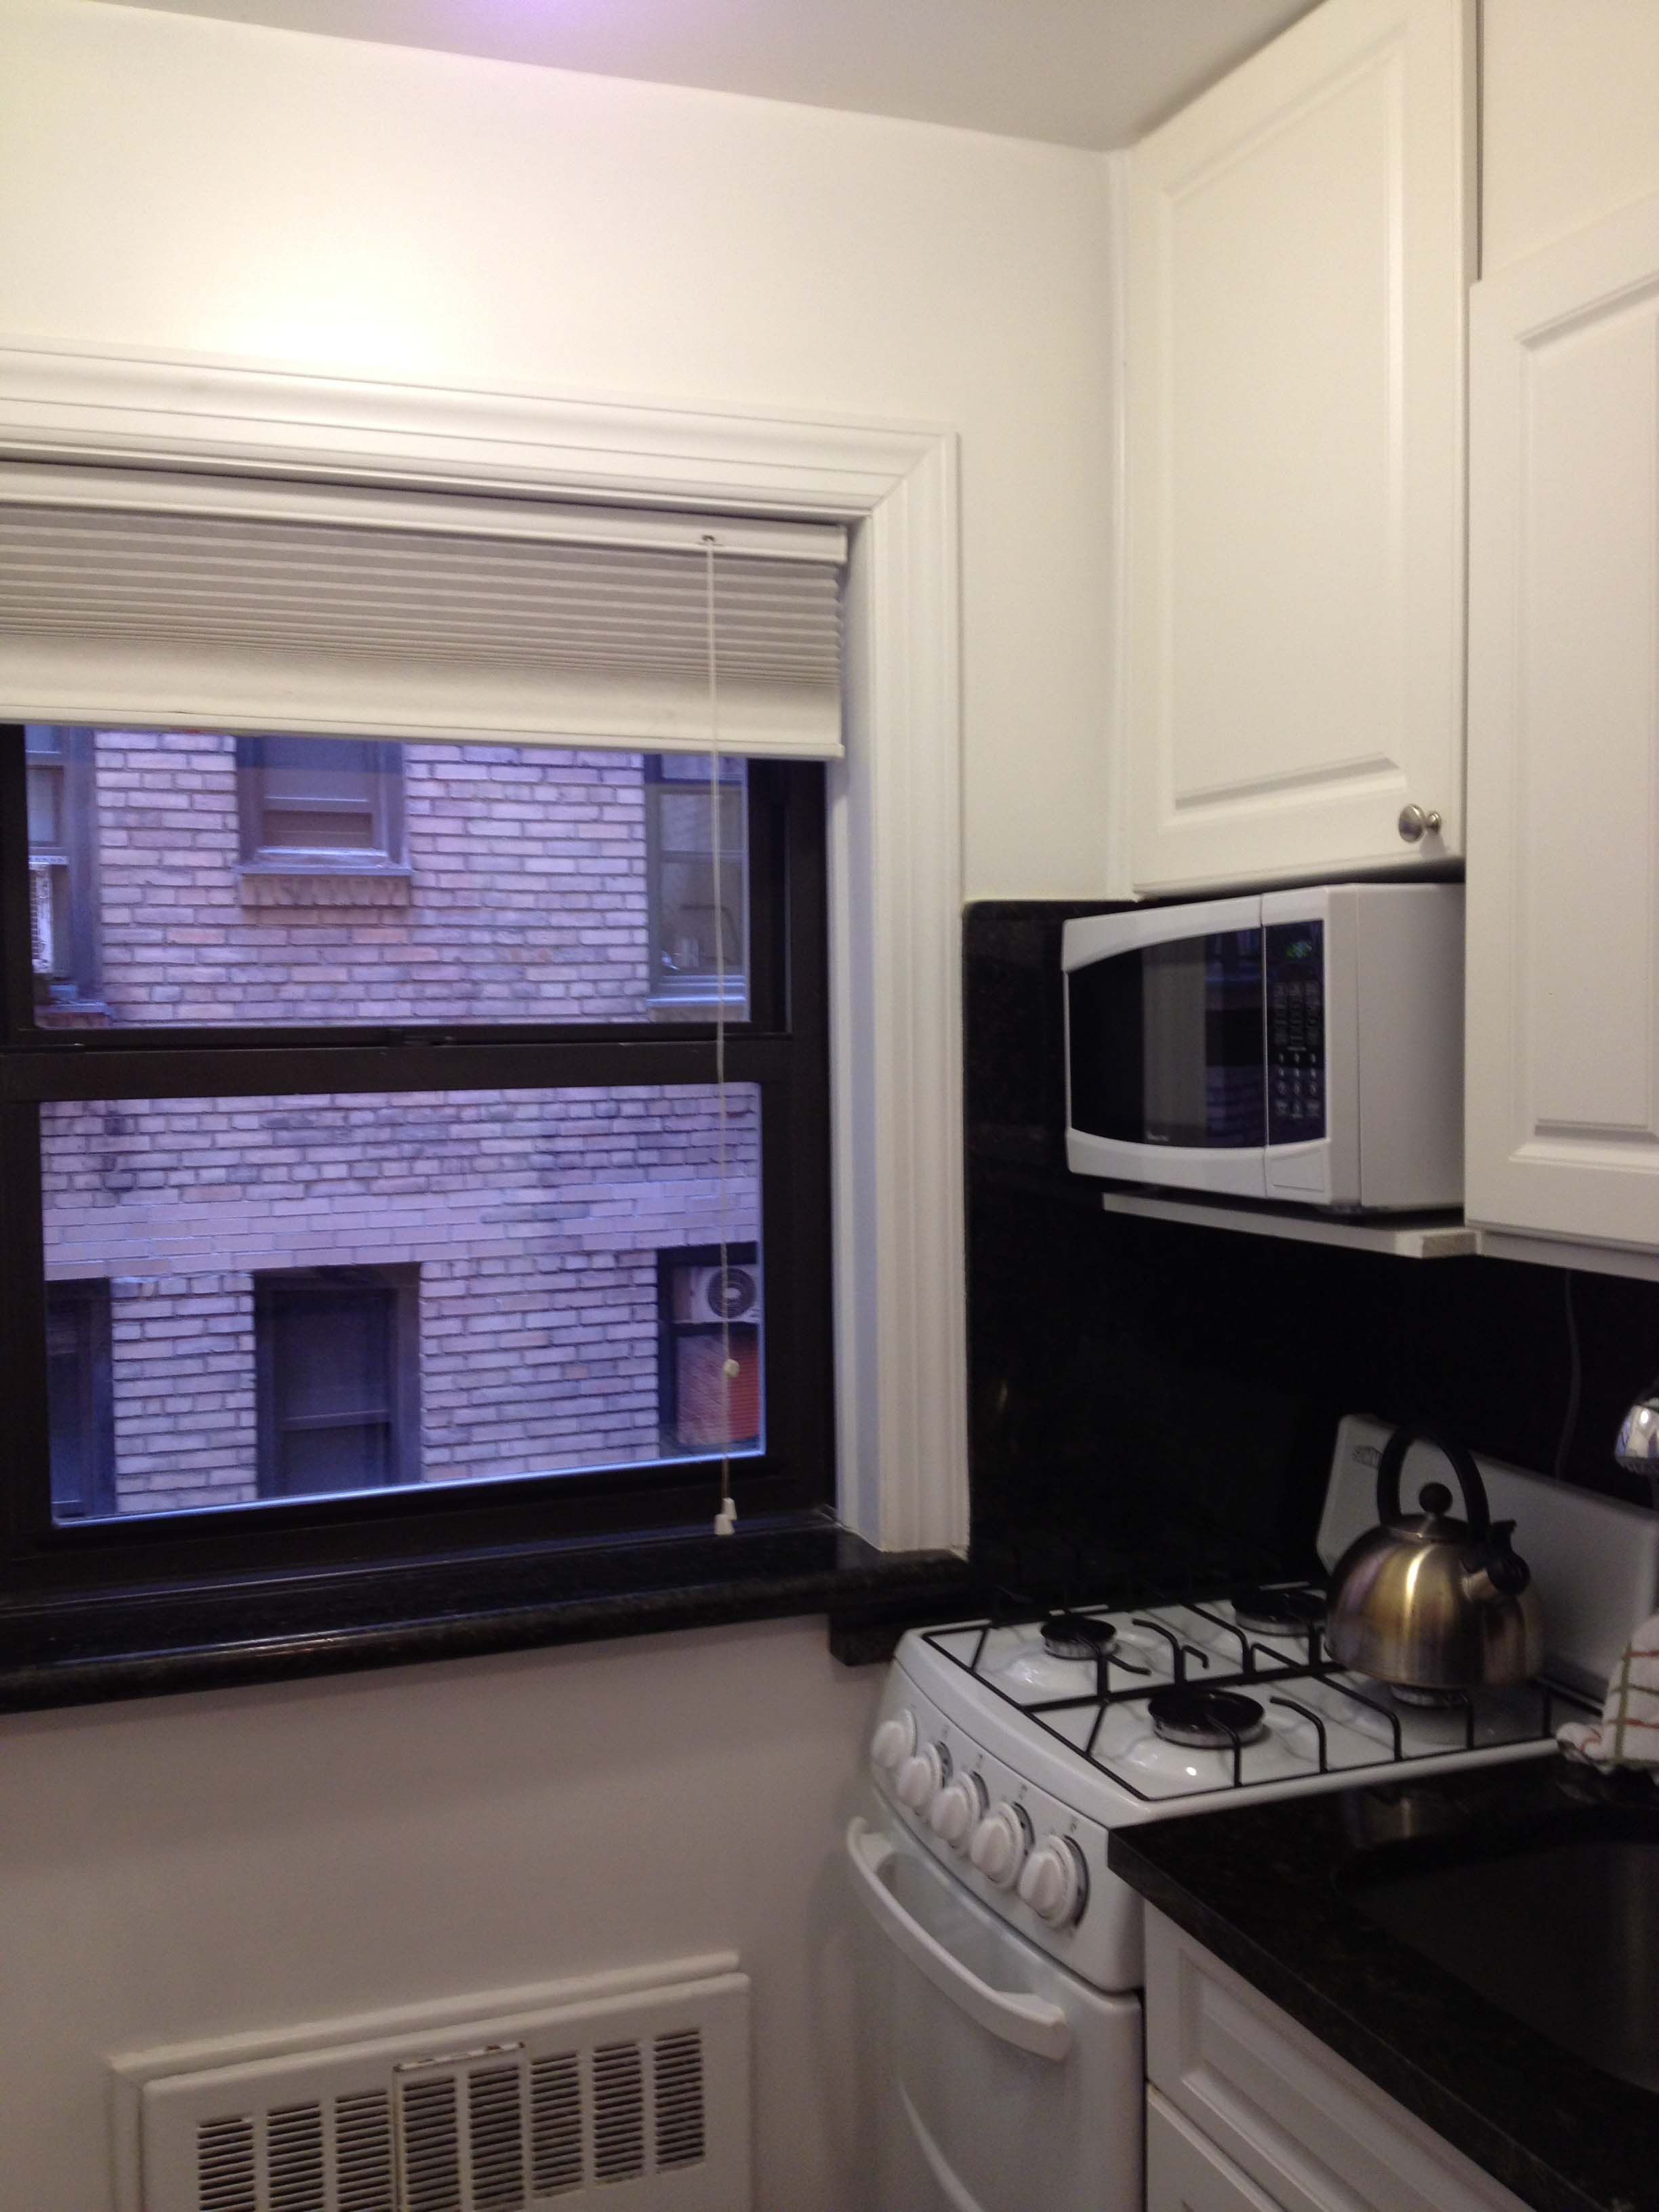 apartment rental new york city kitchen Apartment Rental in New York with HomeAway